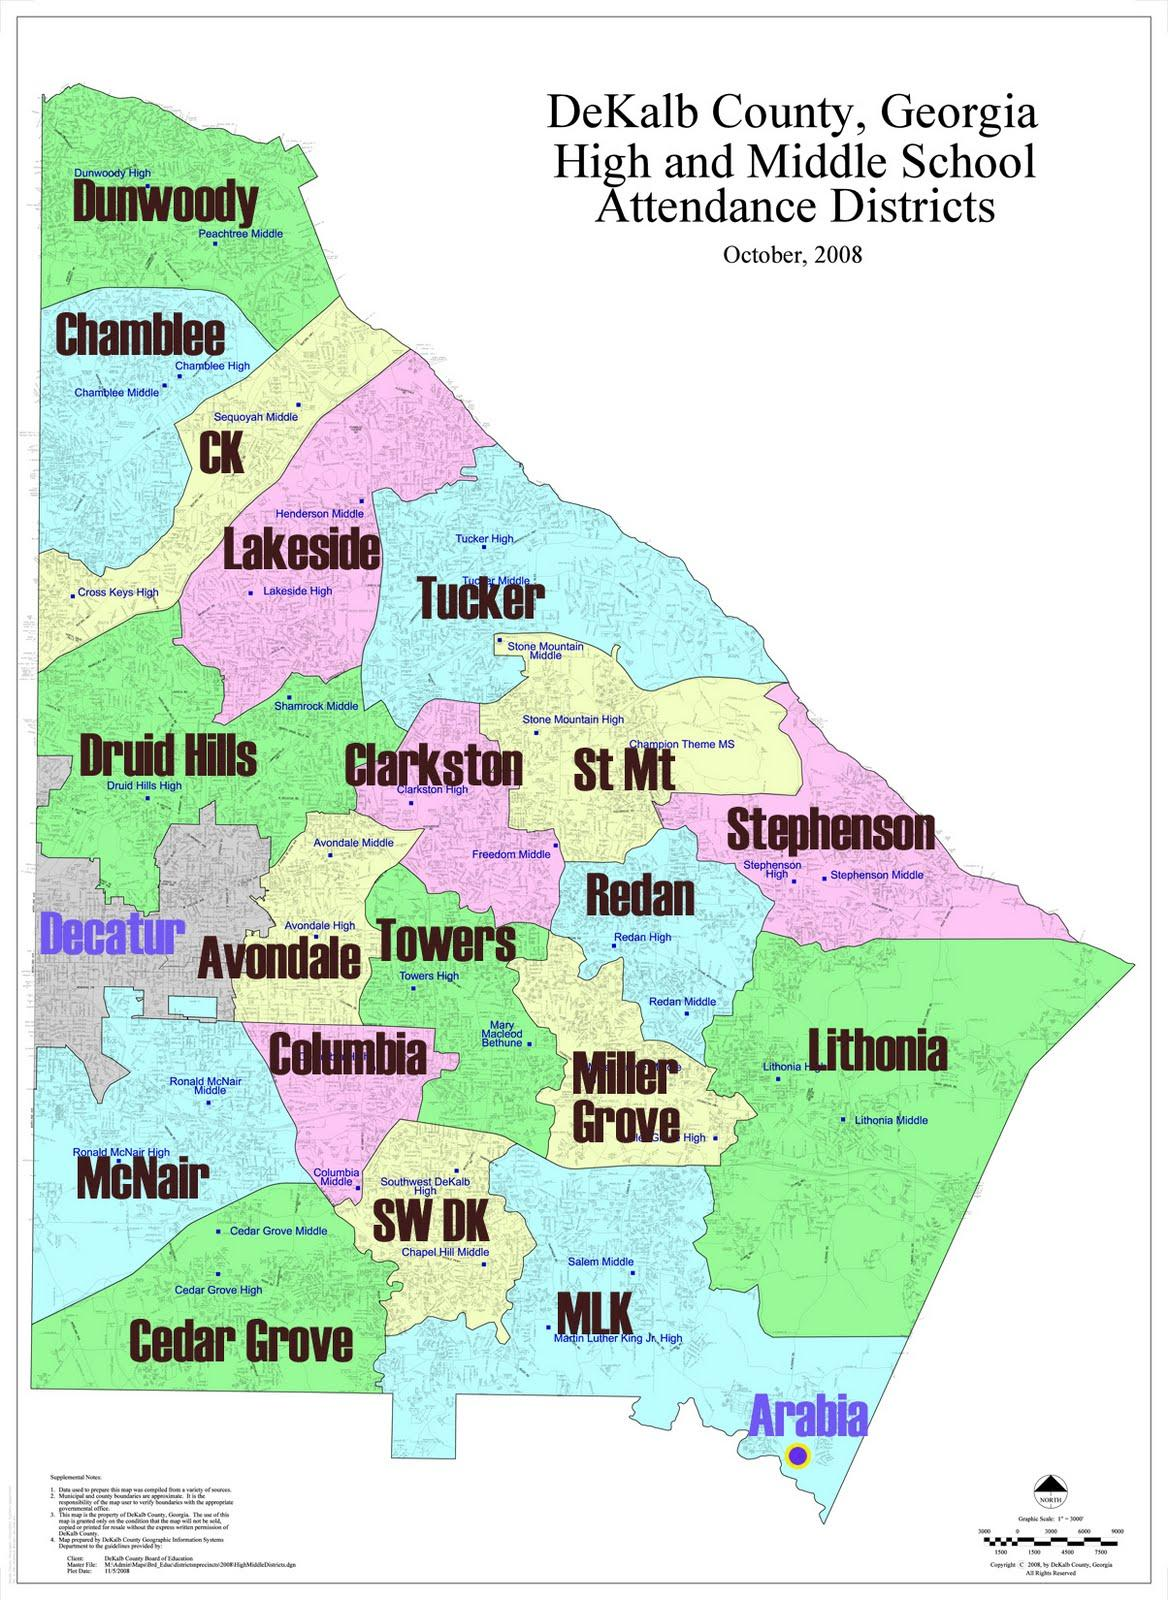 Dekalb County Tax Maps on